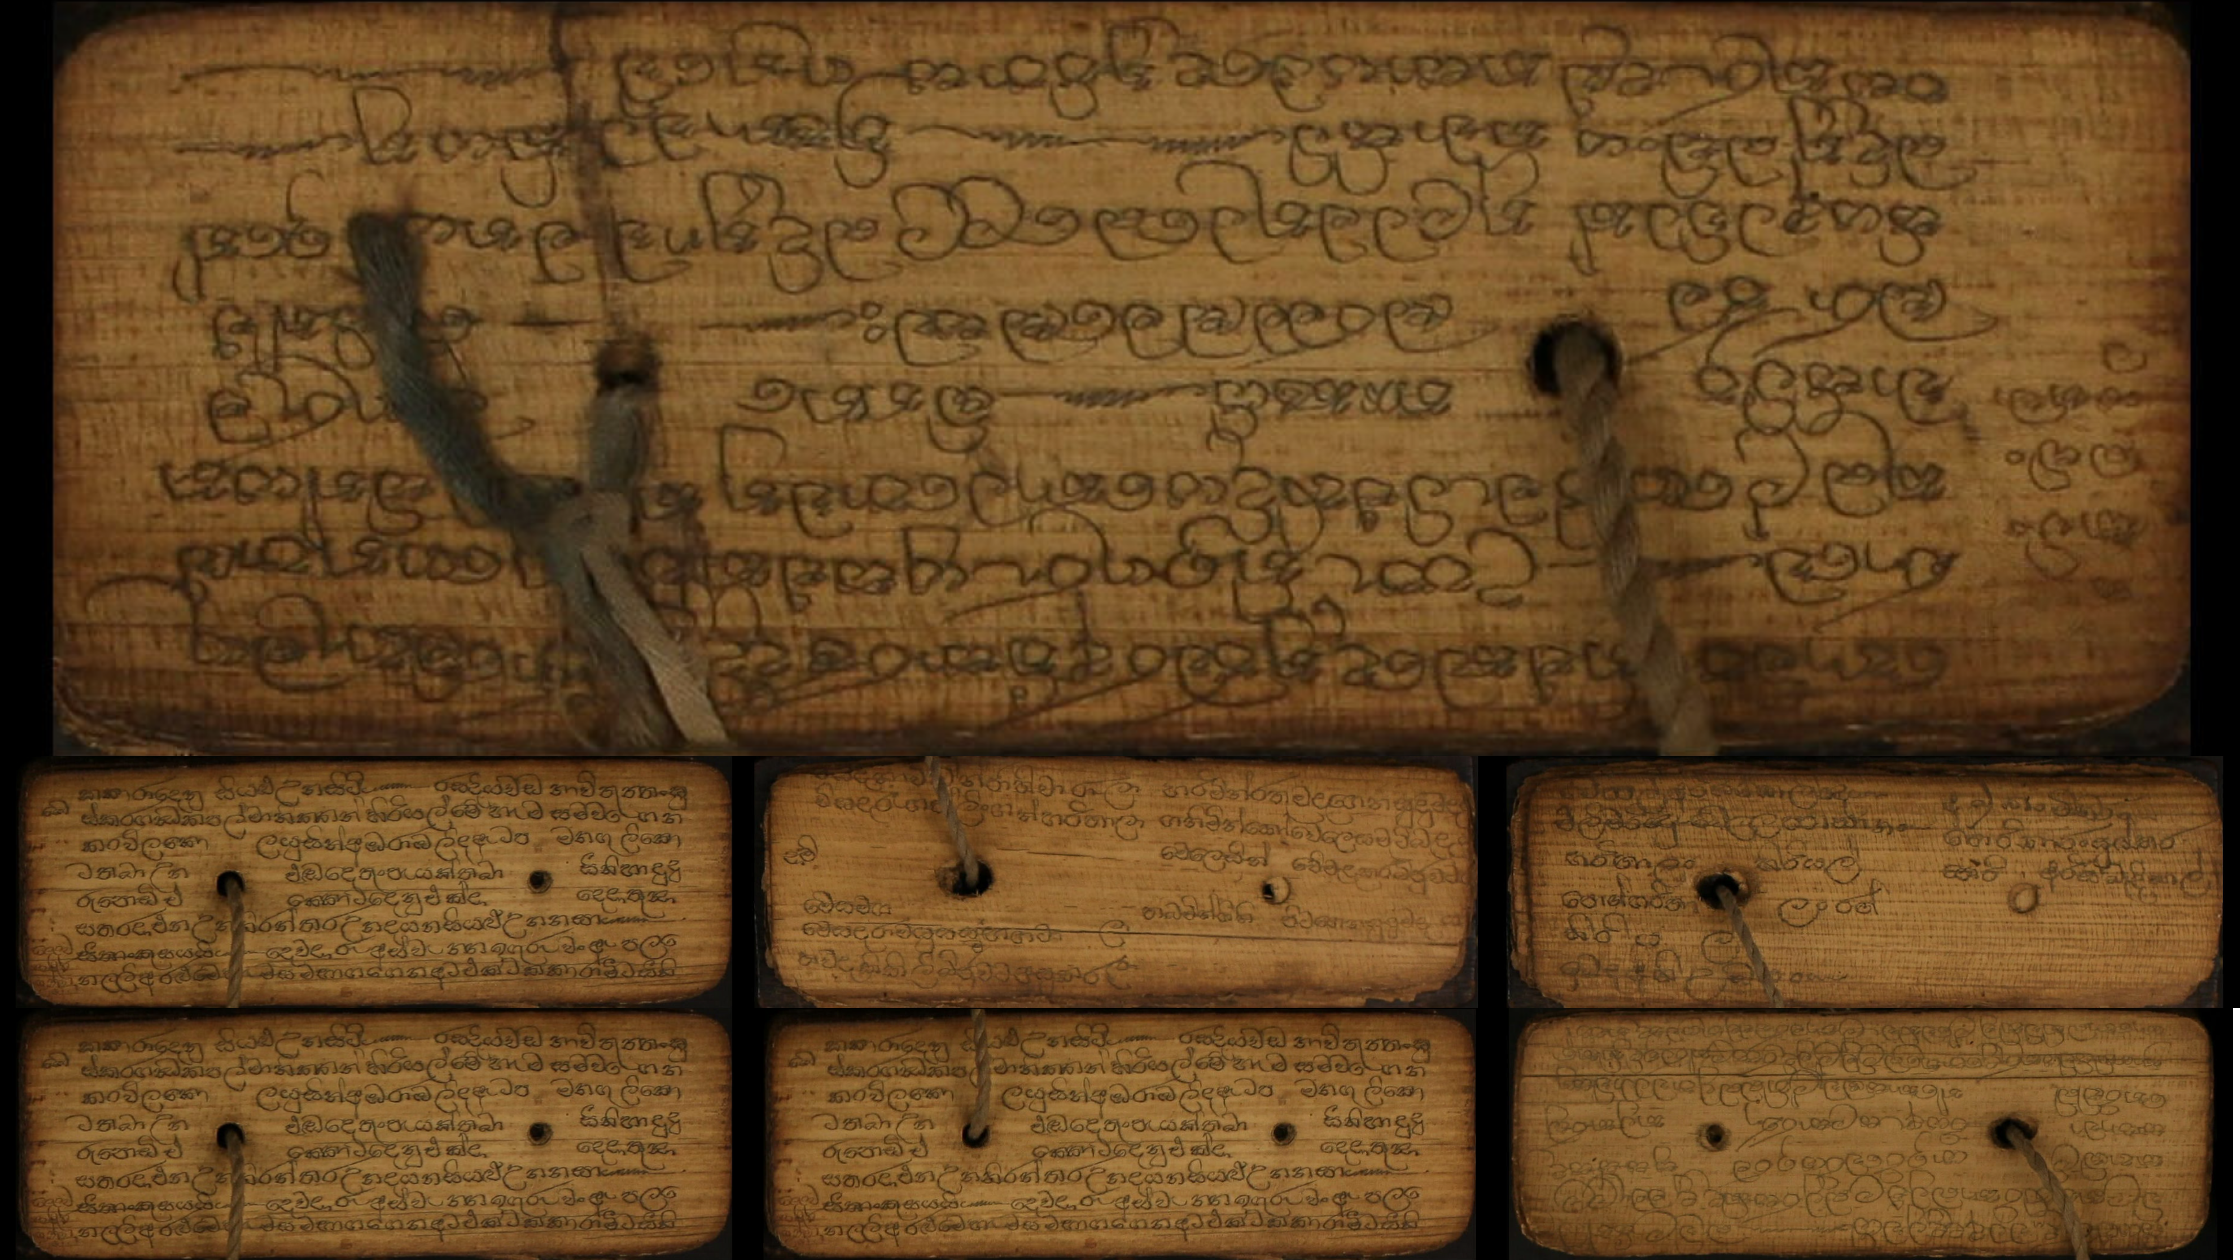 Several pages from the 19th century Sri Lankan doctor's manual.